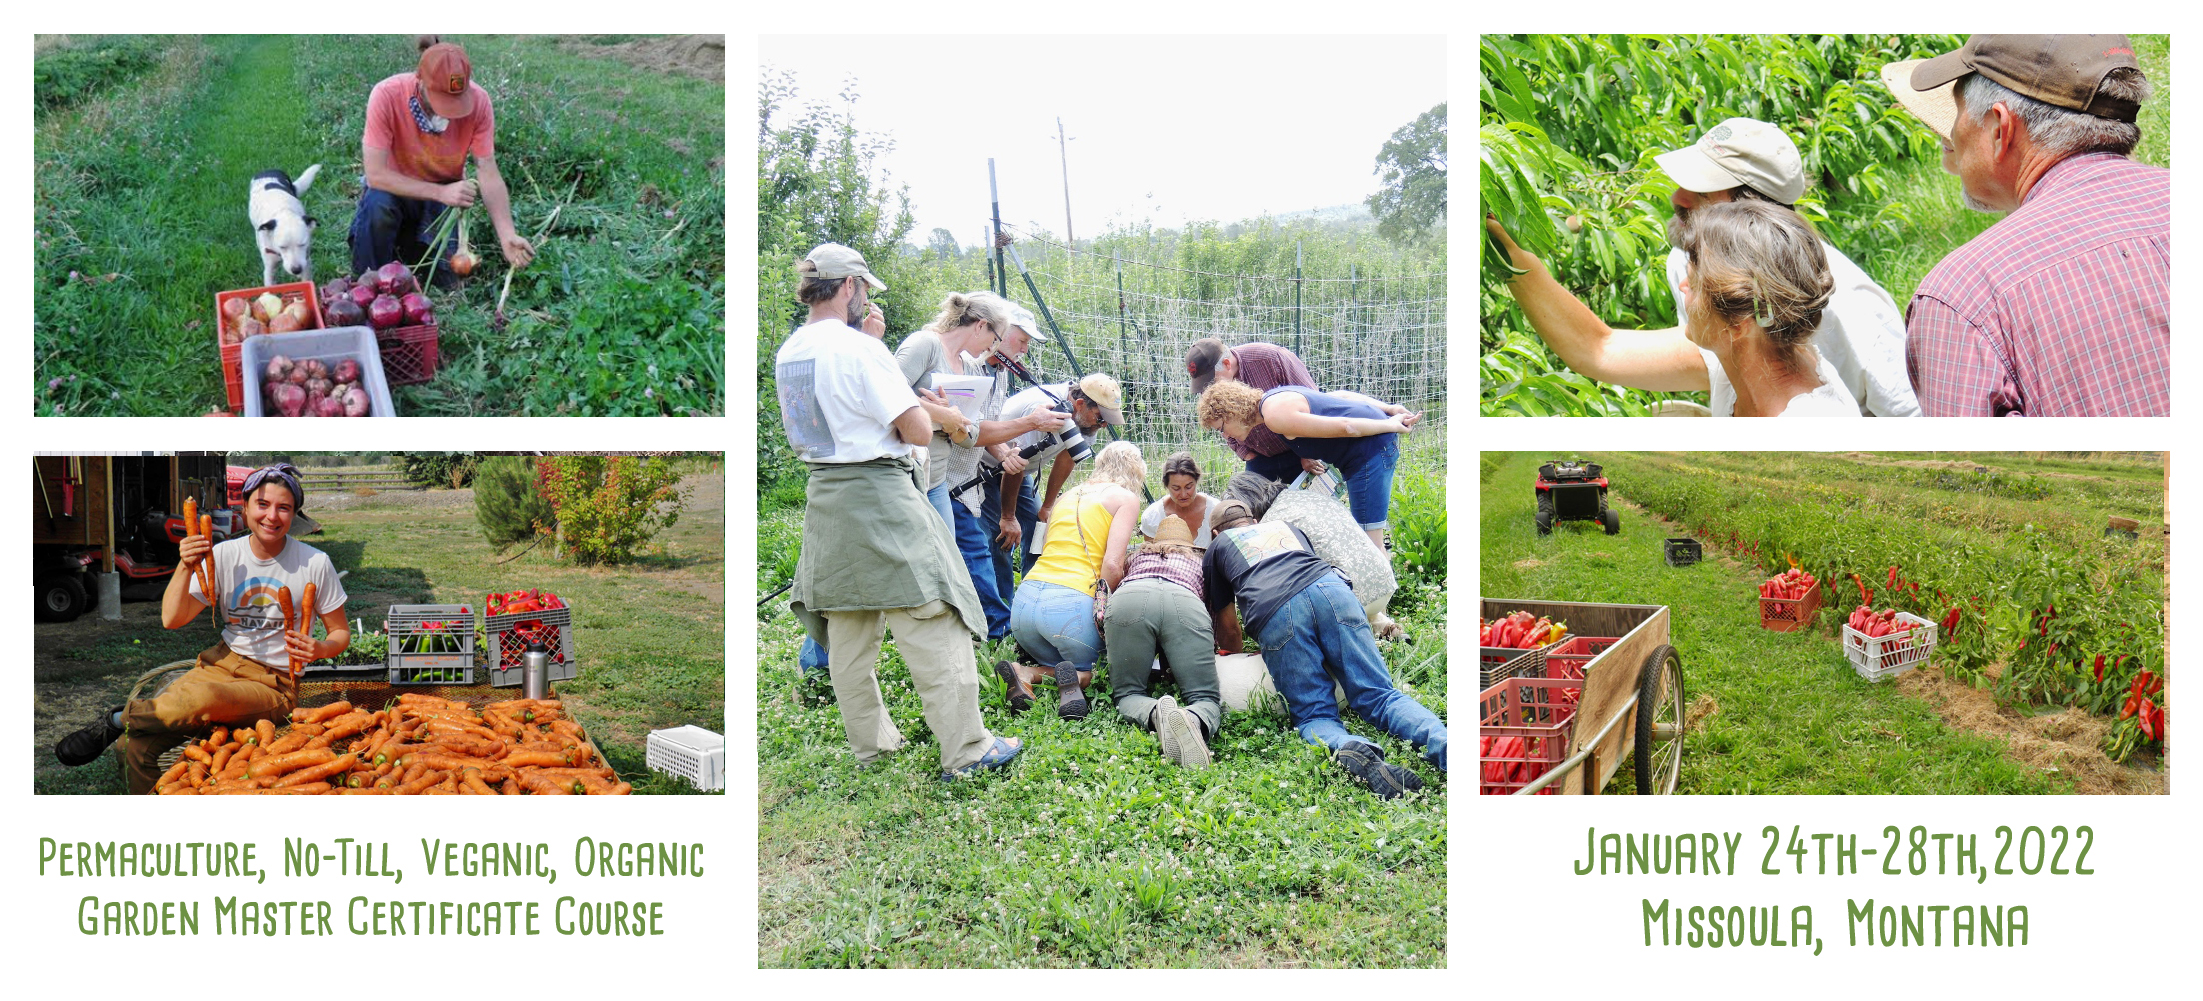 people learning permaculture biodynamic gardening atHelen atthowe garden master course